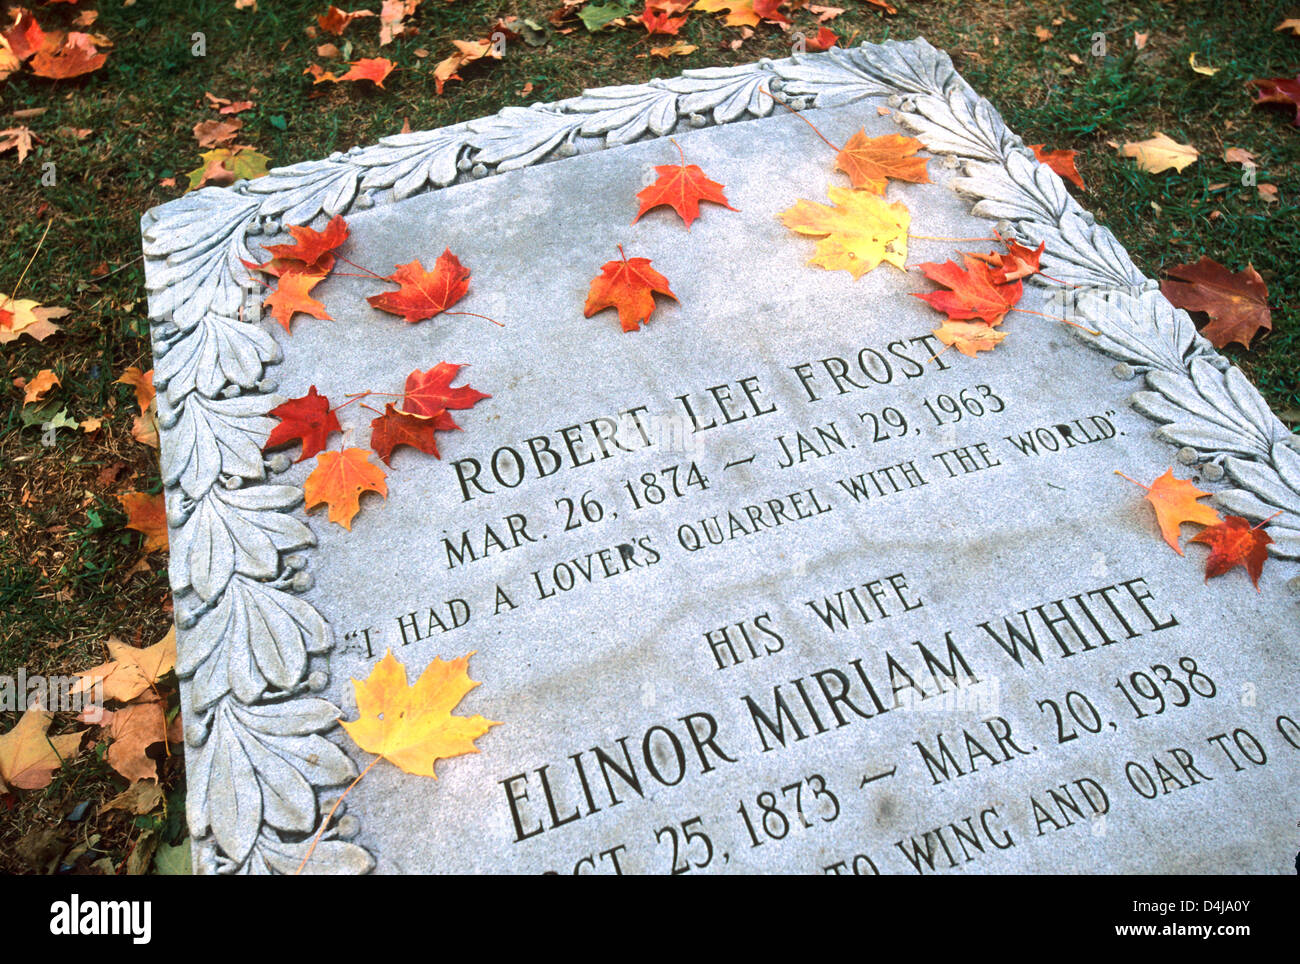 Elk280-1596 Vermont, Bennington, Old First Church, Old Burying Ground cemetary, Robert Frost's grave - Stock Image